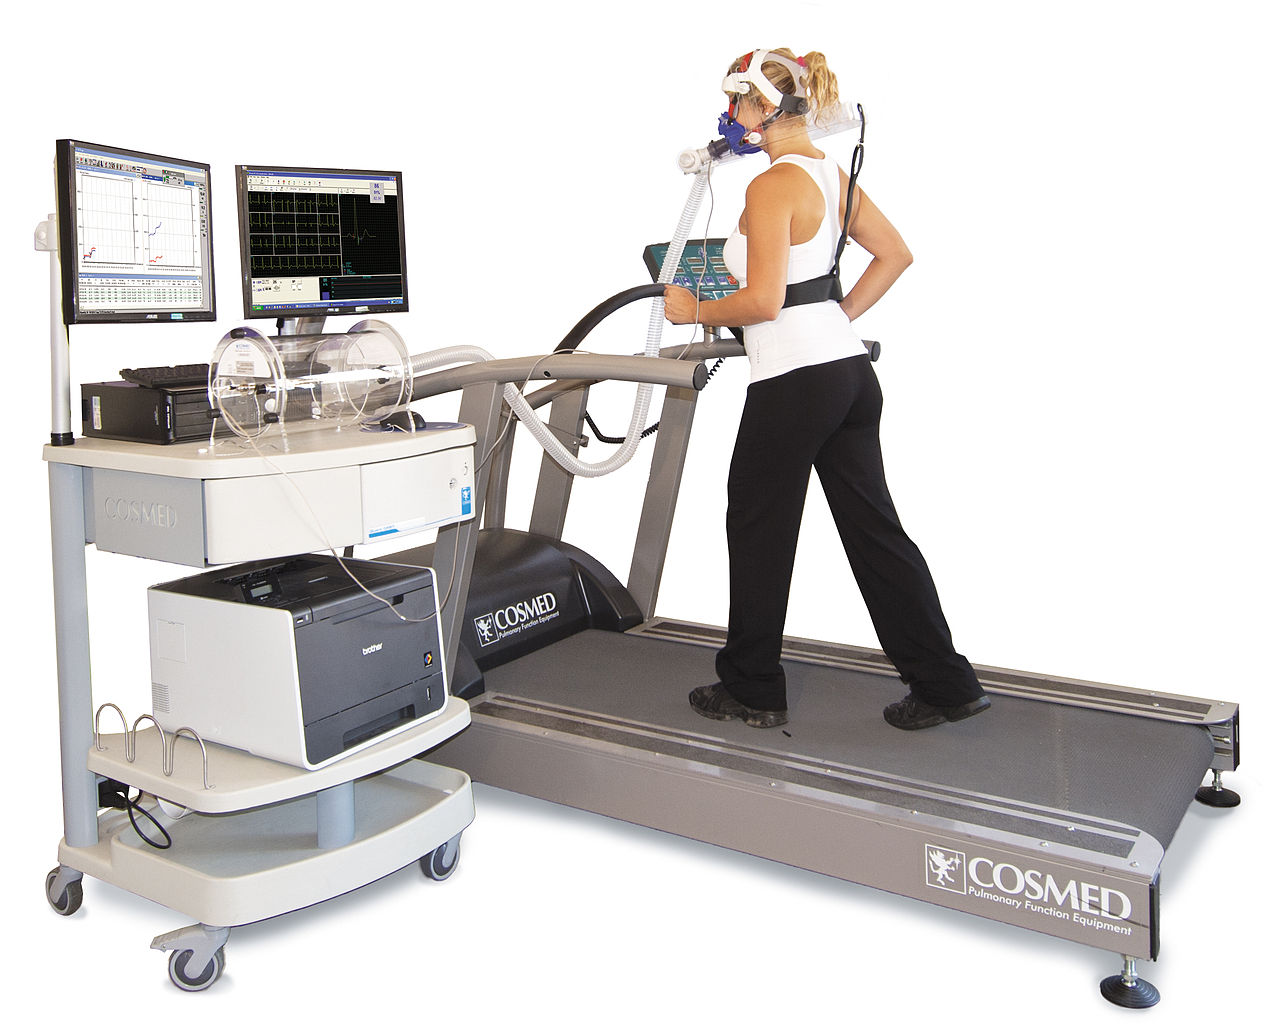 VO2 max measurement through a modern metabolic cart during a graded exercise test on a treadmill